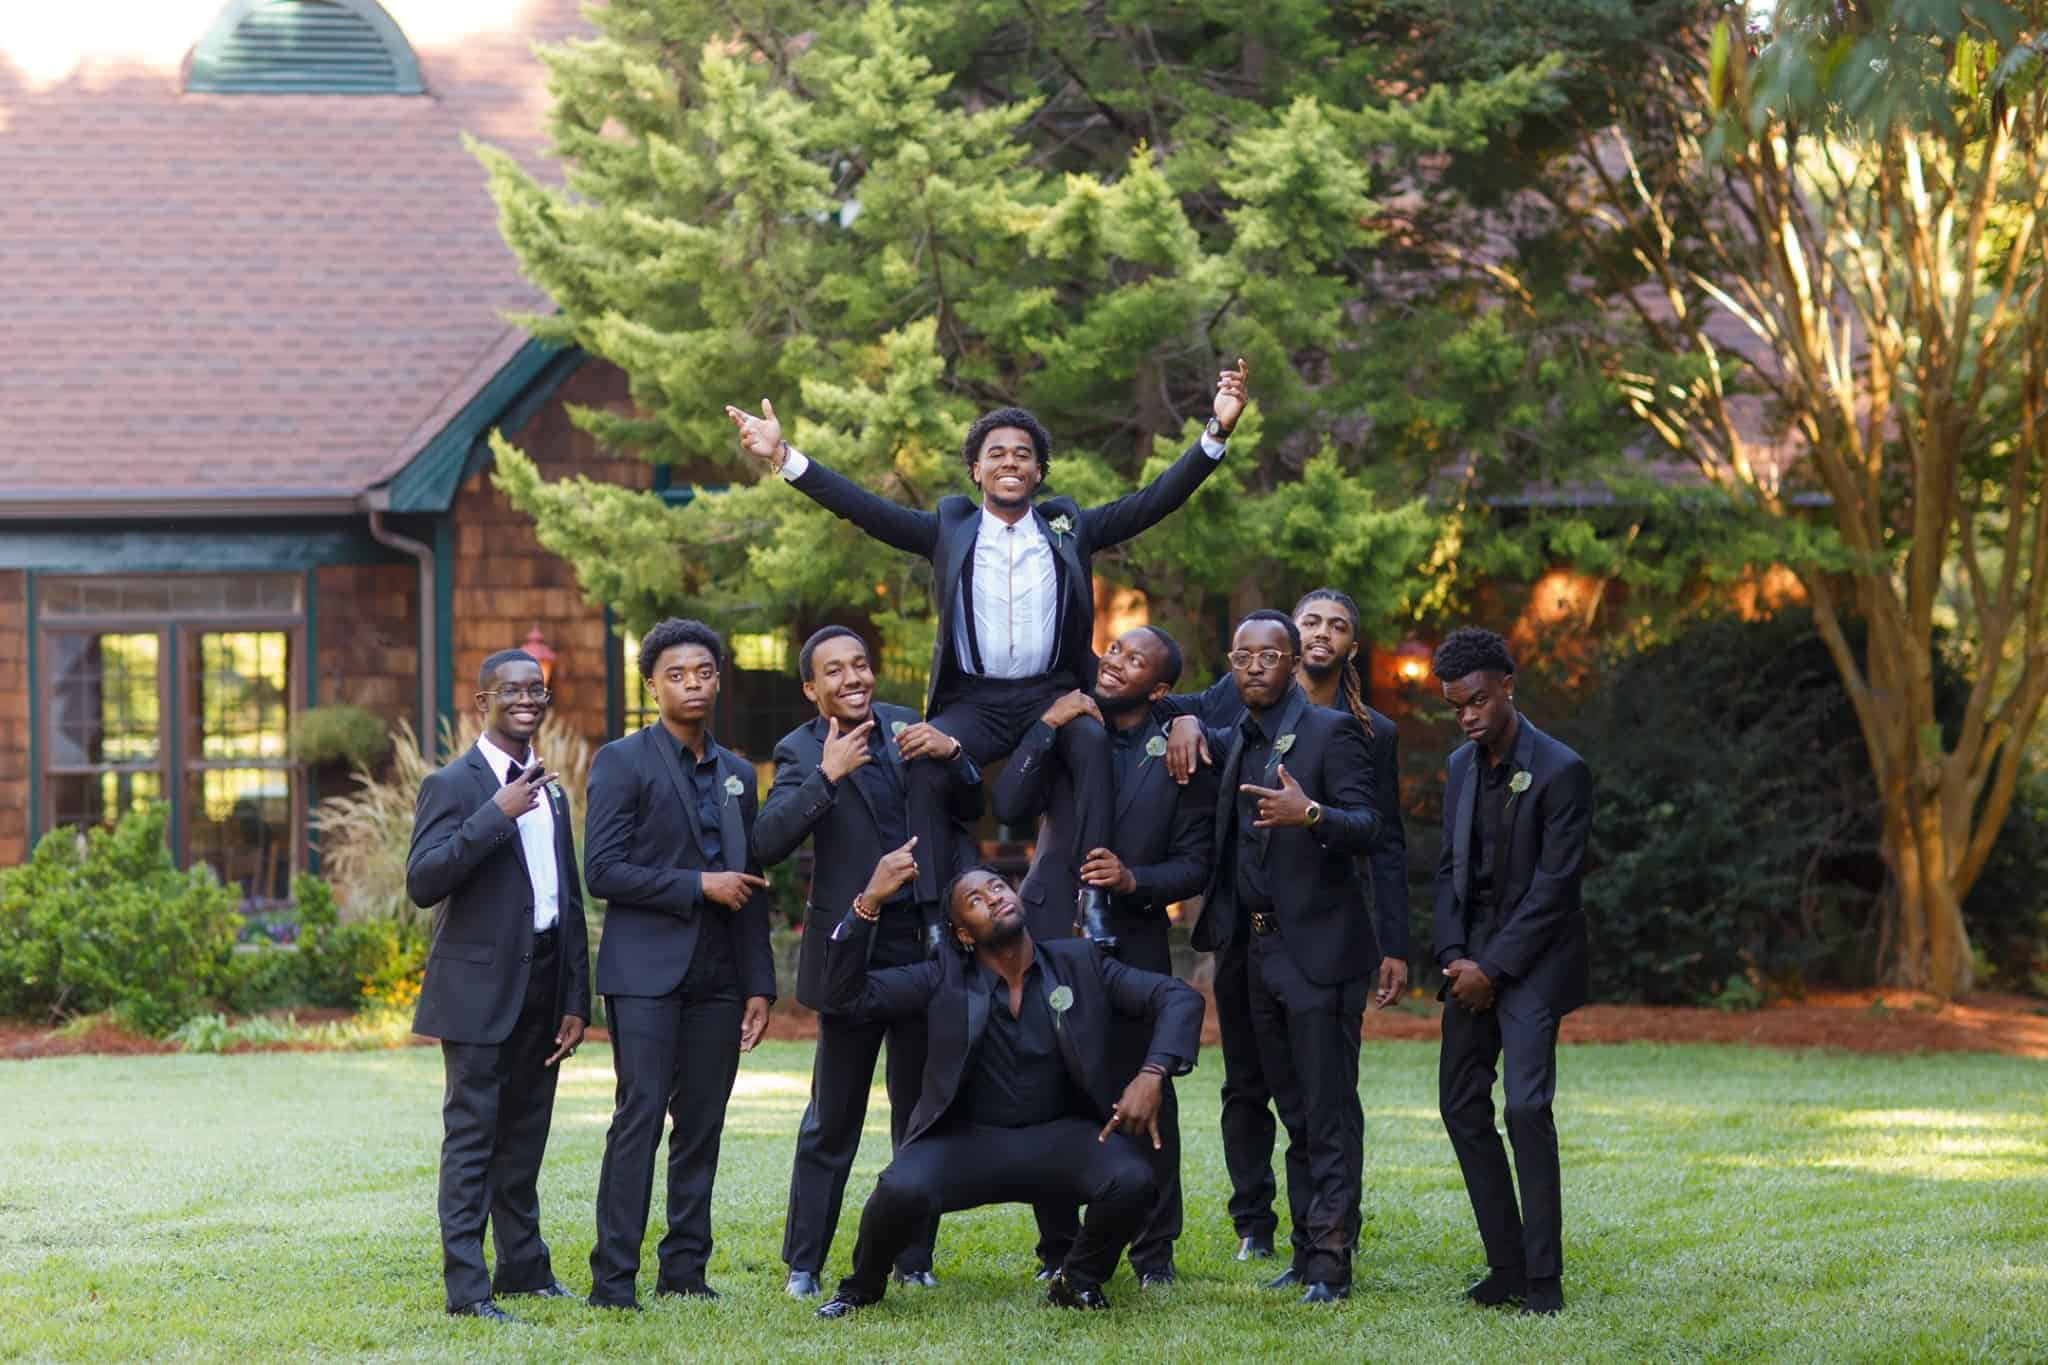 Groom on shoulders of 2 groomsmen with others around him outside in black